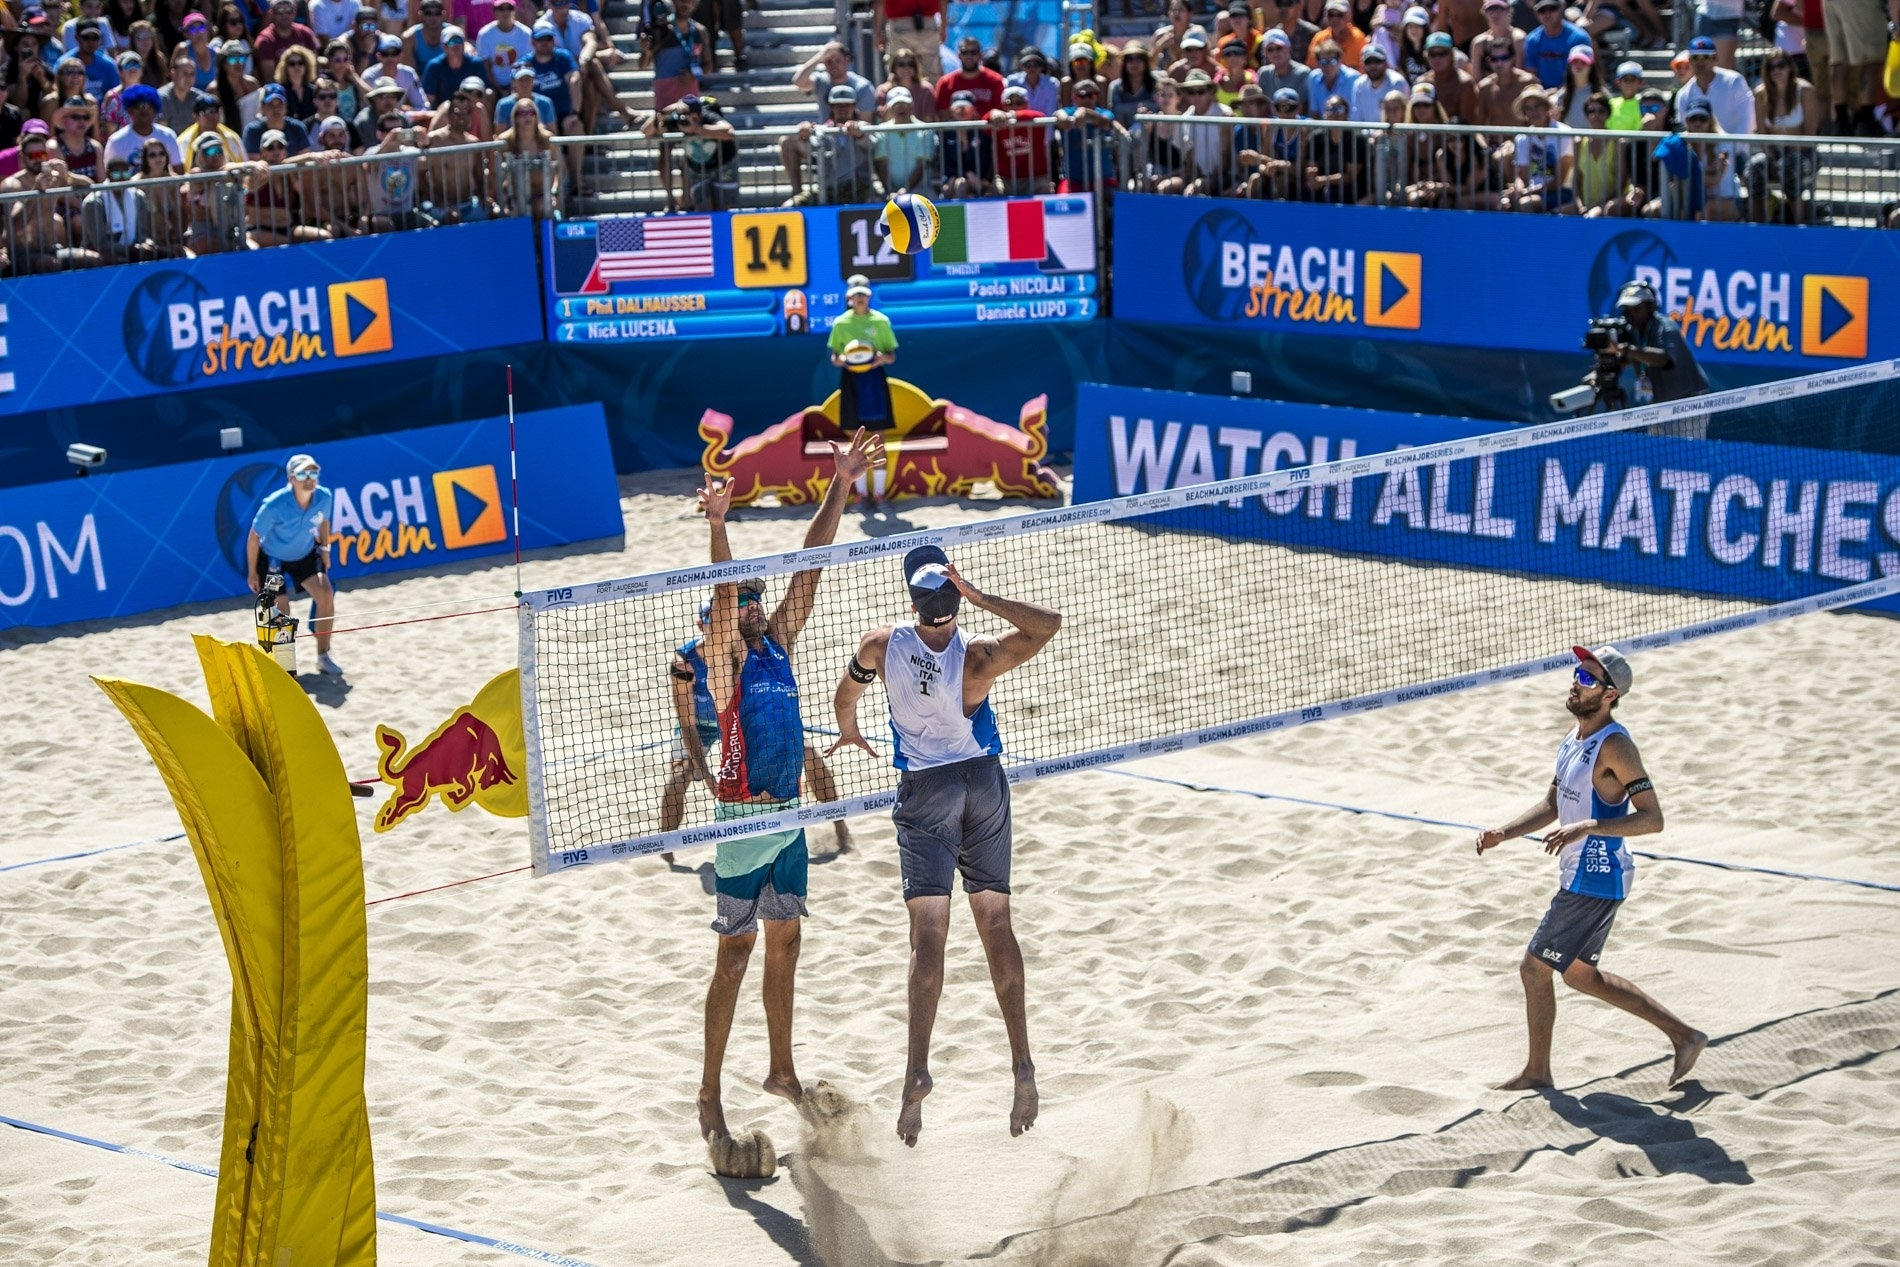 The Americans did not drop a set on their way to lifting the title on home sand